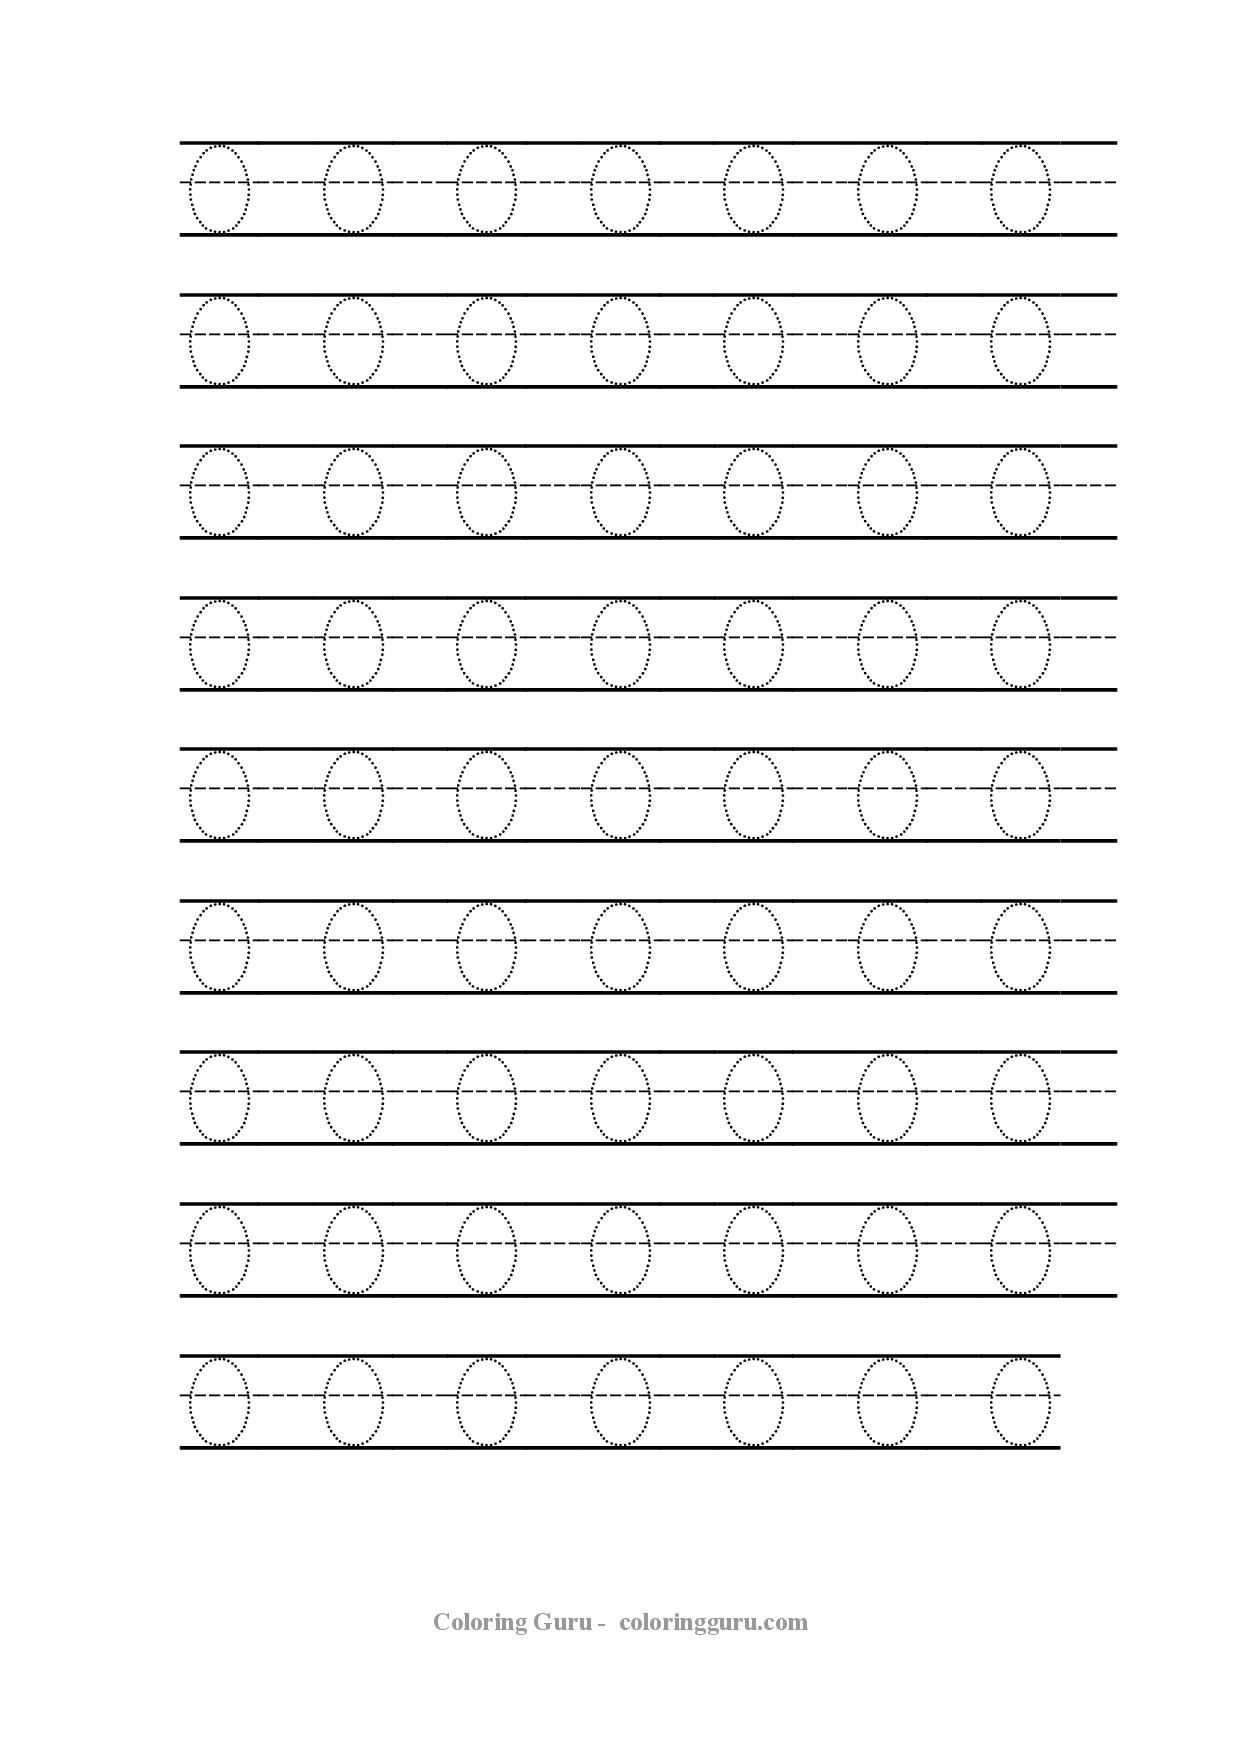 Free Printable Tracing Number 0 Worksheets Handwriting Worksheets For Kids Free Handwriting Worksheets Tracing Worksheets